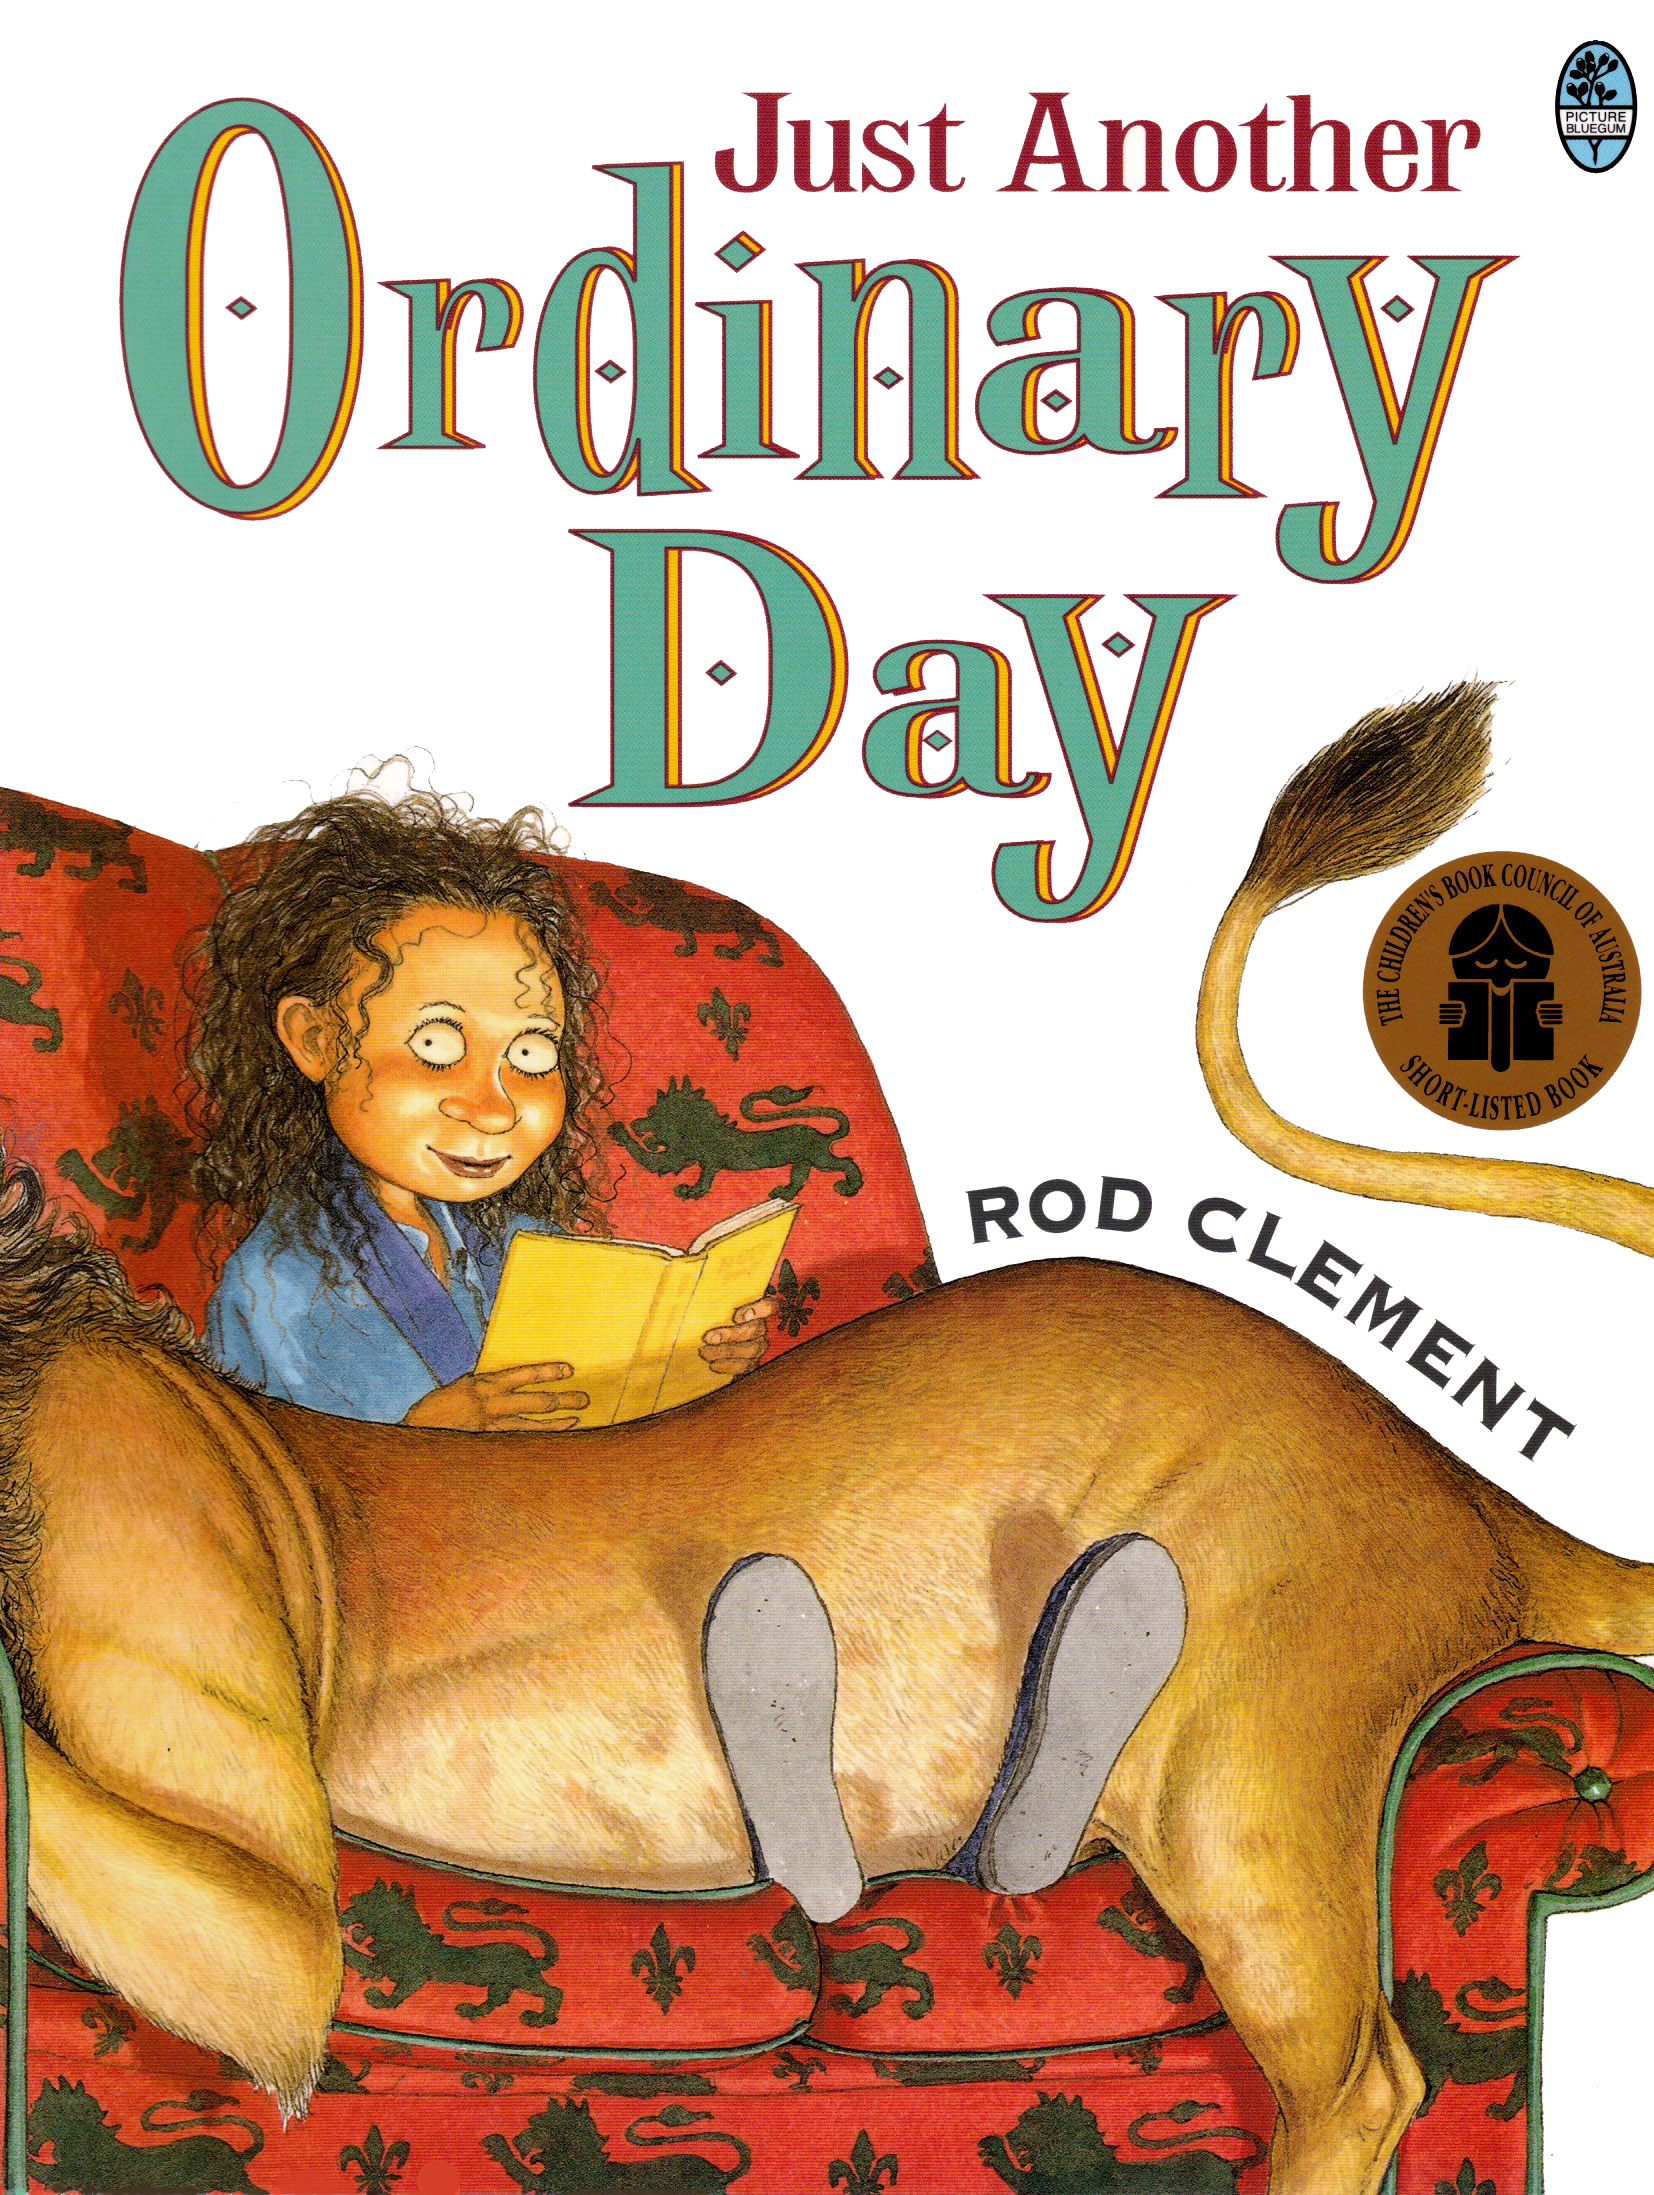 rod_clement_ordinary_day_cover_02.jpeg